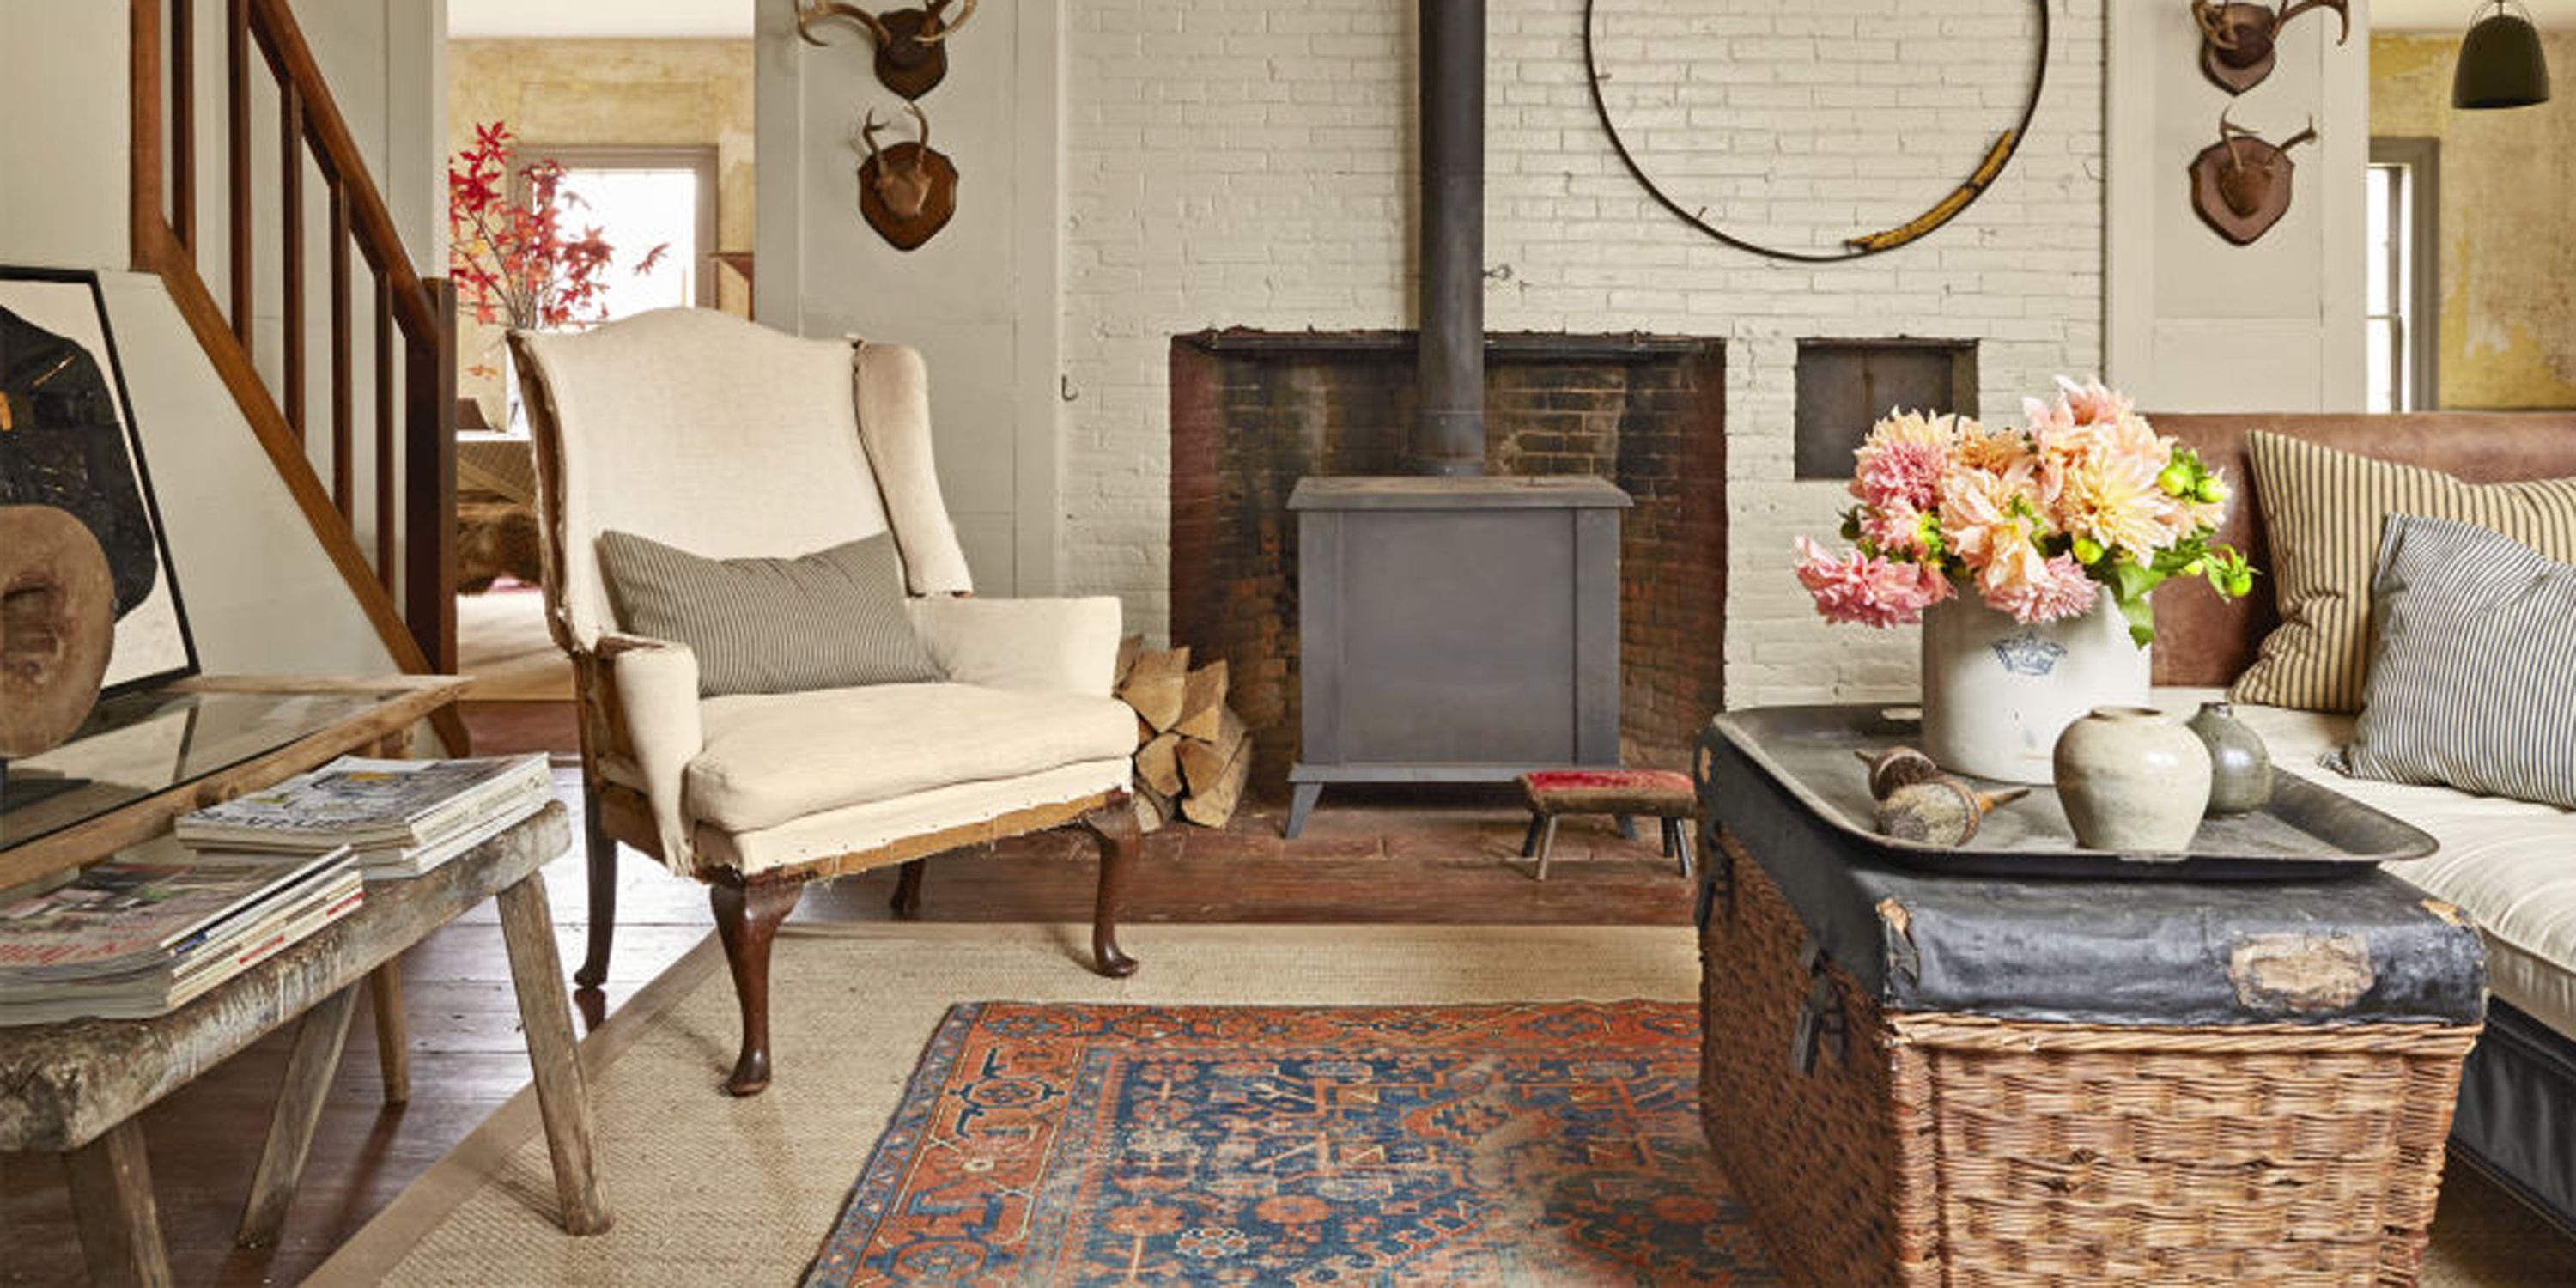 Its official the layered rug trend is here to stay